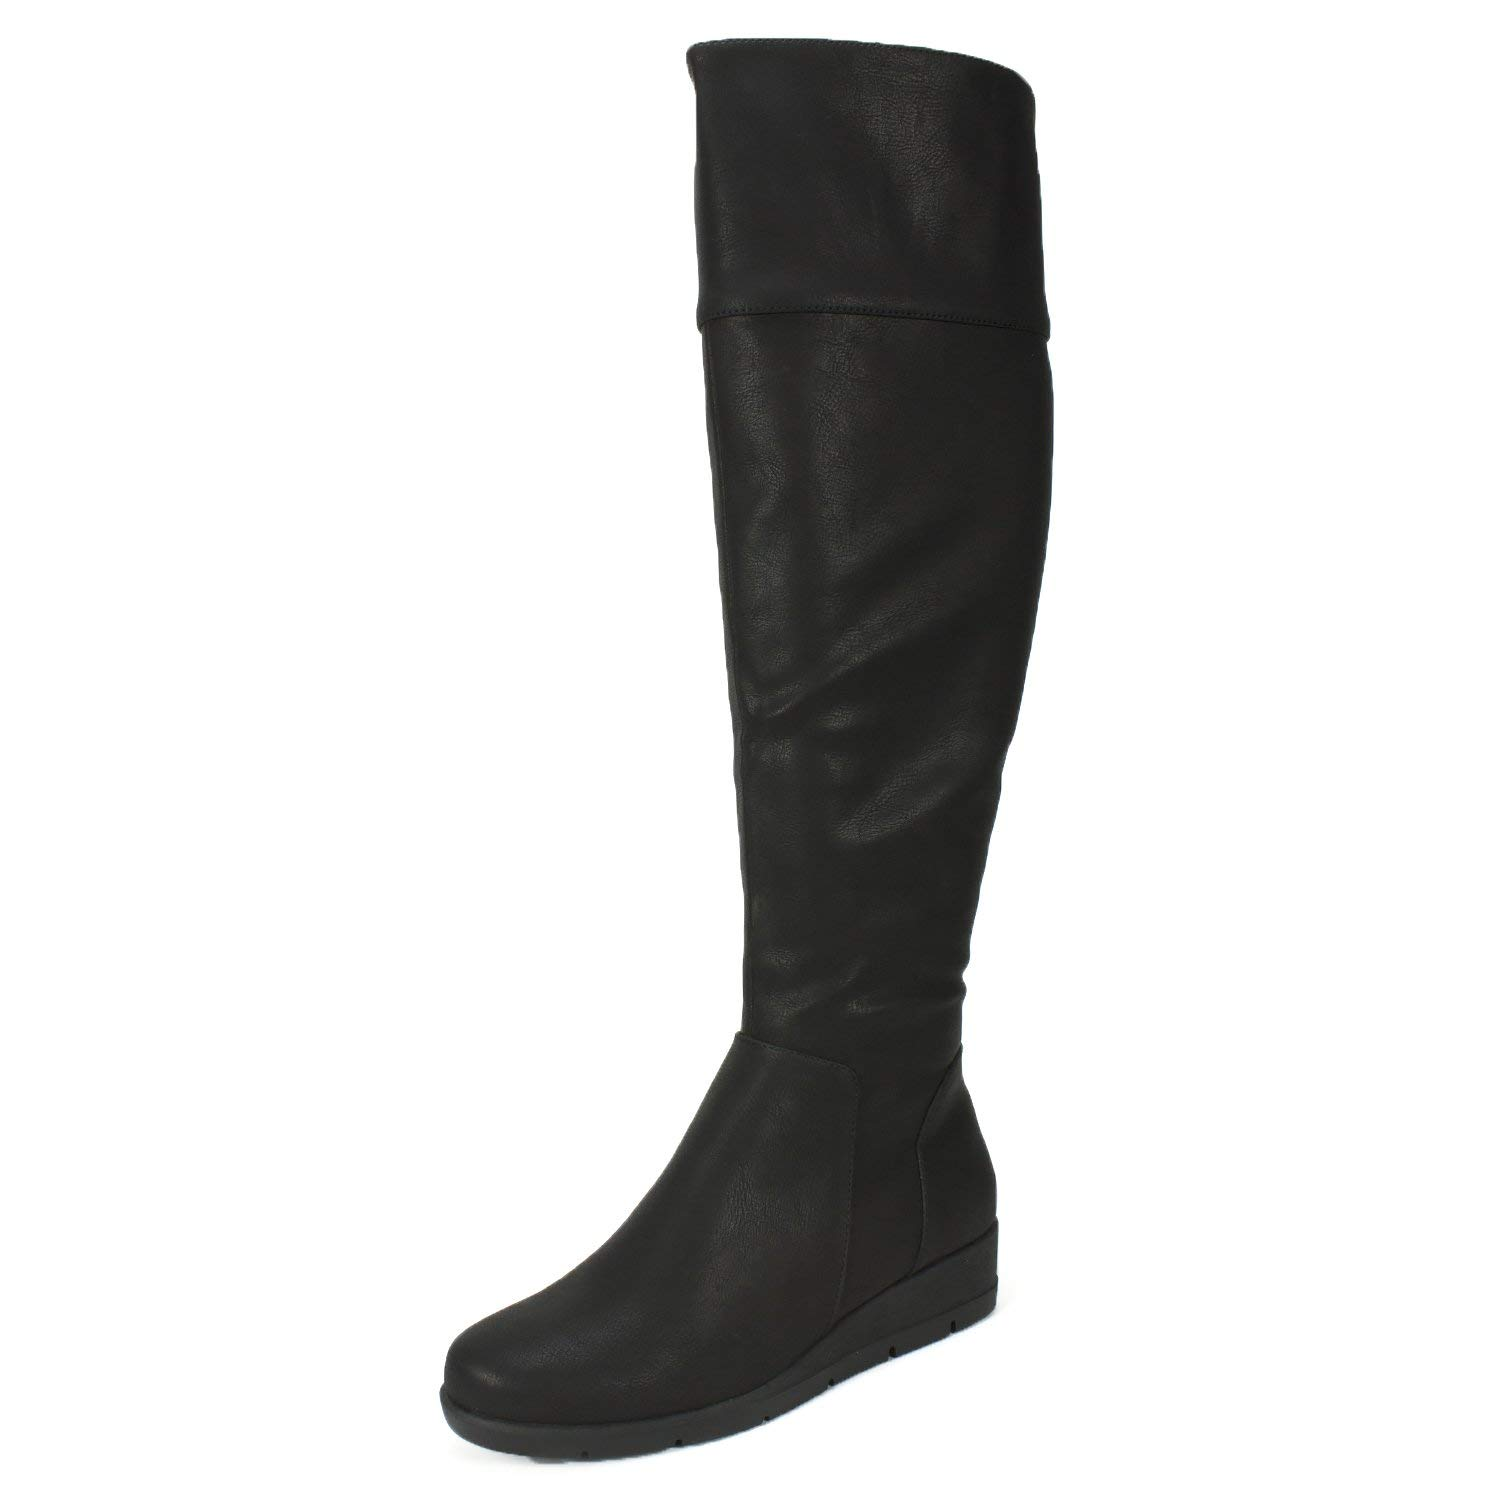 26c12b9703b Details about CLIFFS BY WHITE MOUNTAIN Cliffs 'Truly' Women's Boot